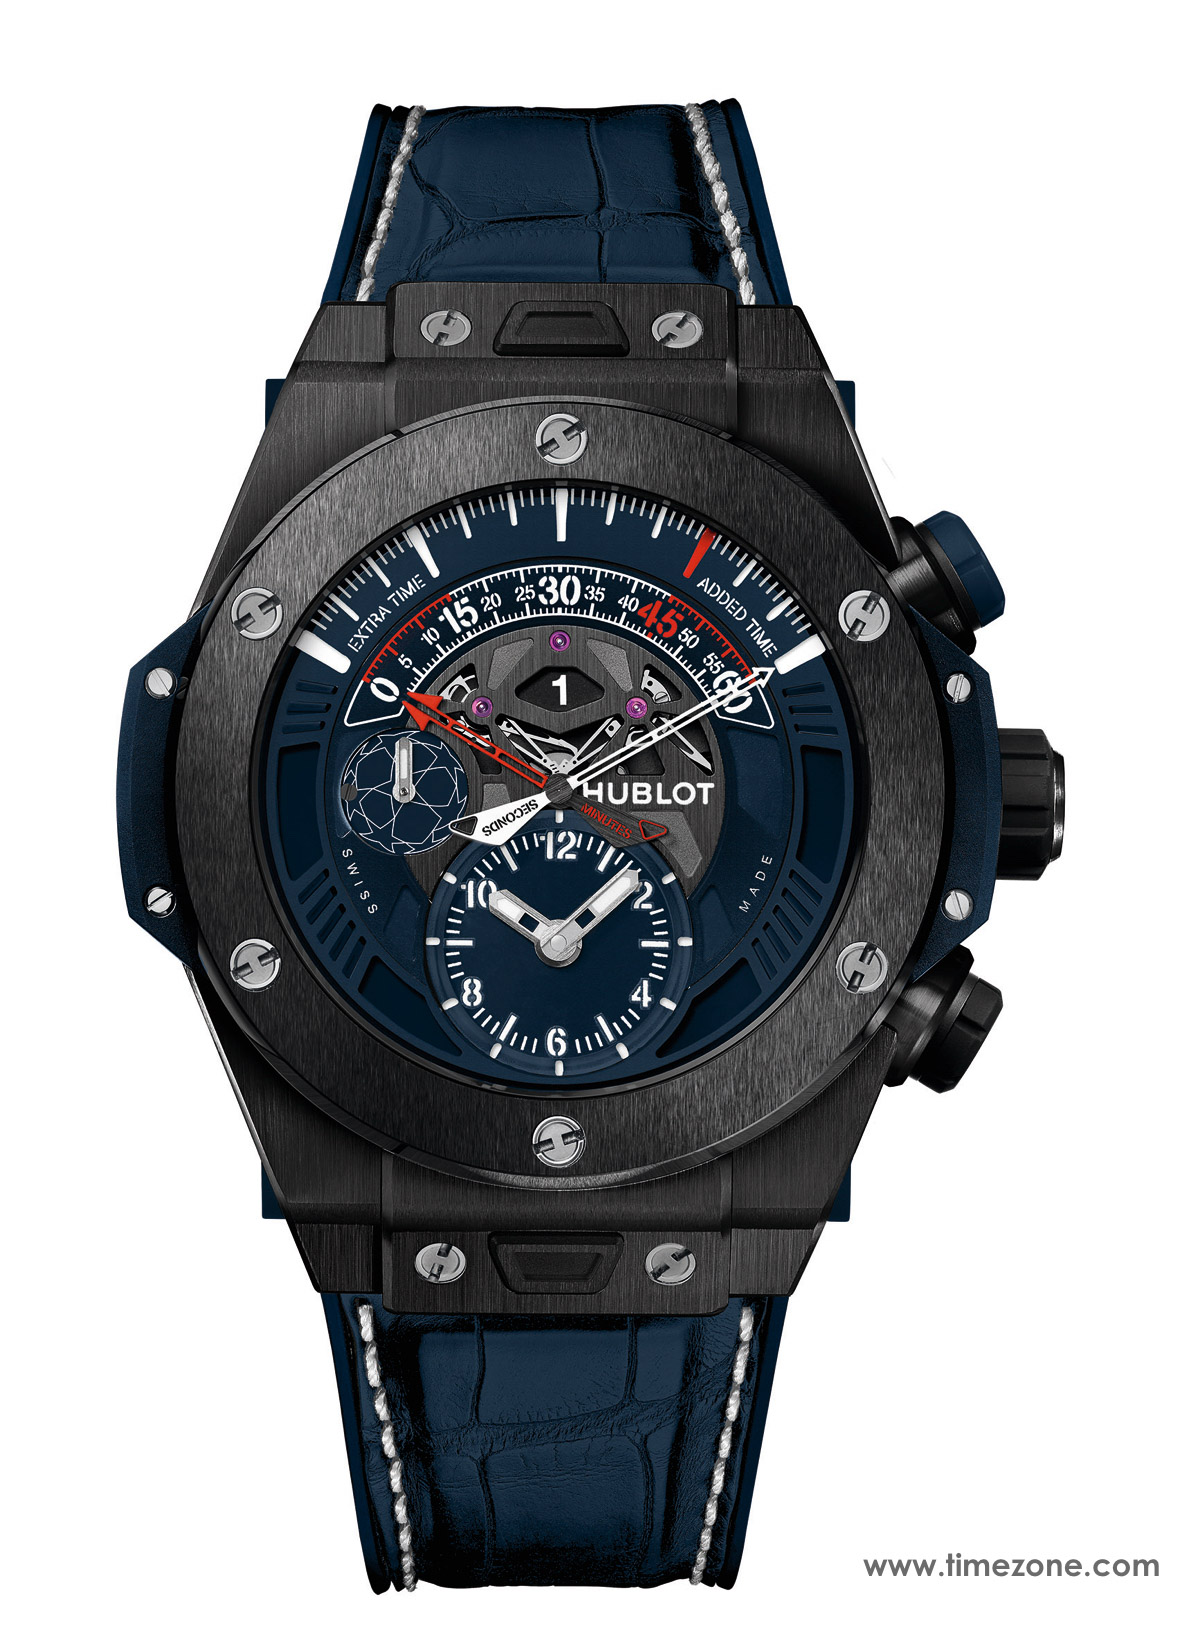 Hublot Big Bang Unico Retrograde Chronograph, Big Bang Unico Retrograde Chronograph, Hublot Unico Retrograde Chronograph, 413-cx-7123-lr-ucl16-sd-hr-w